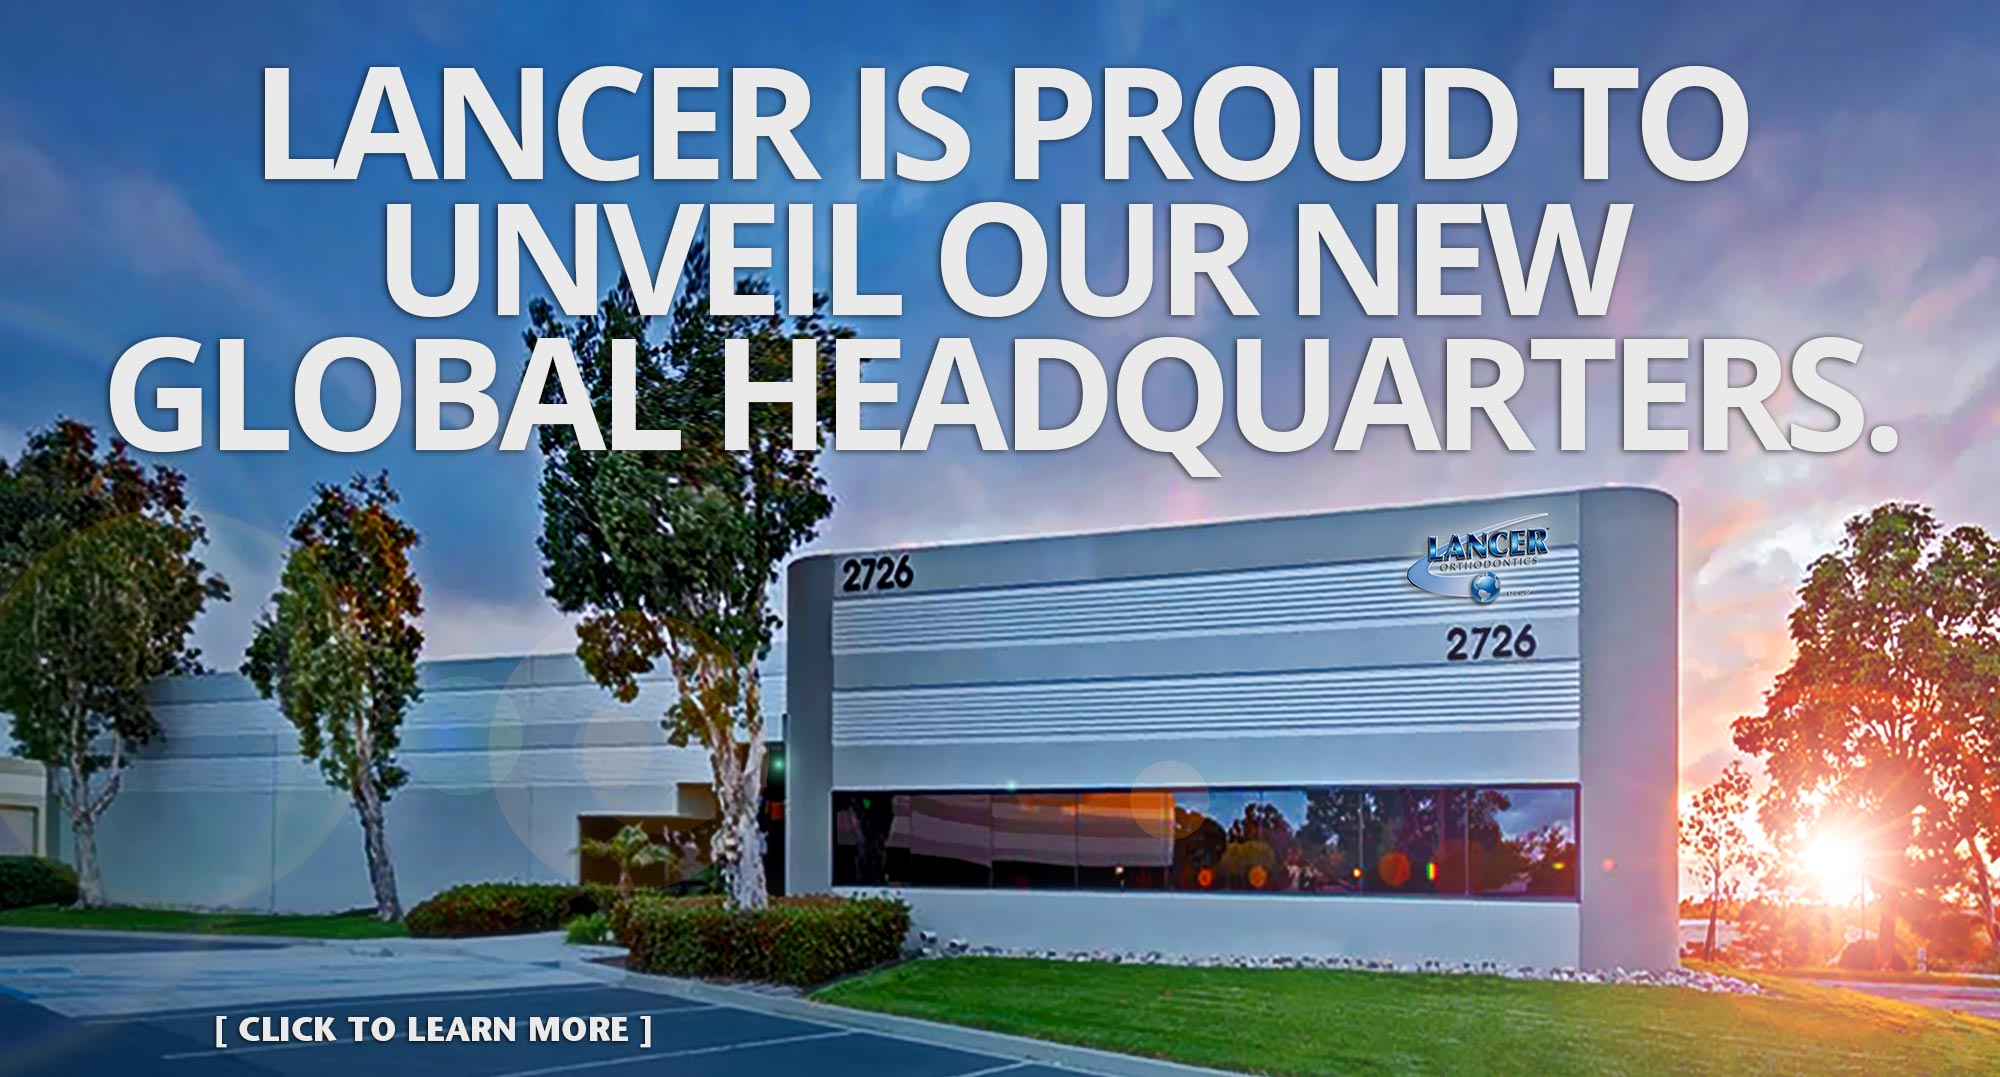 Lancer is proud to unveil our new global headquarters.